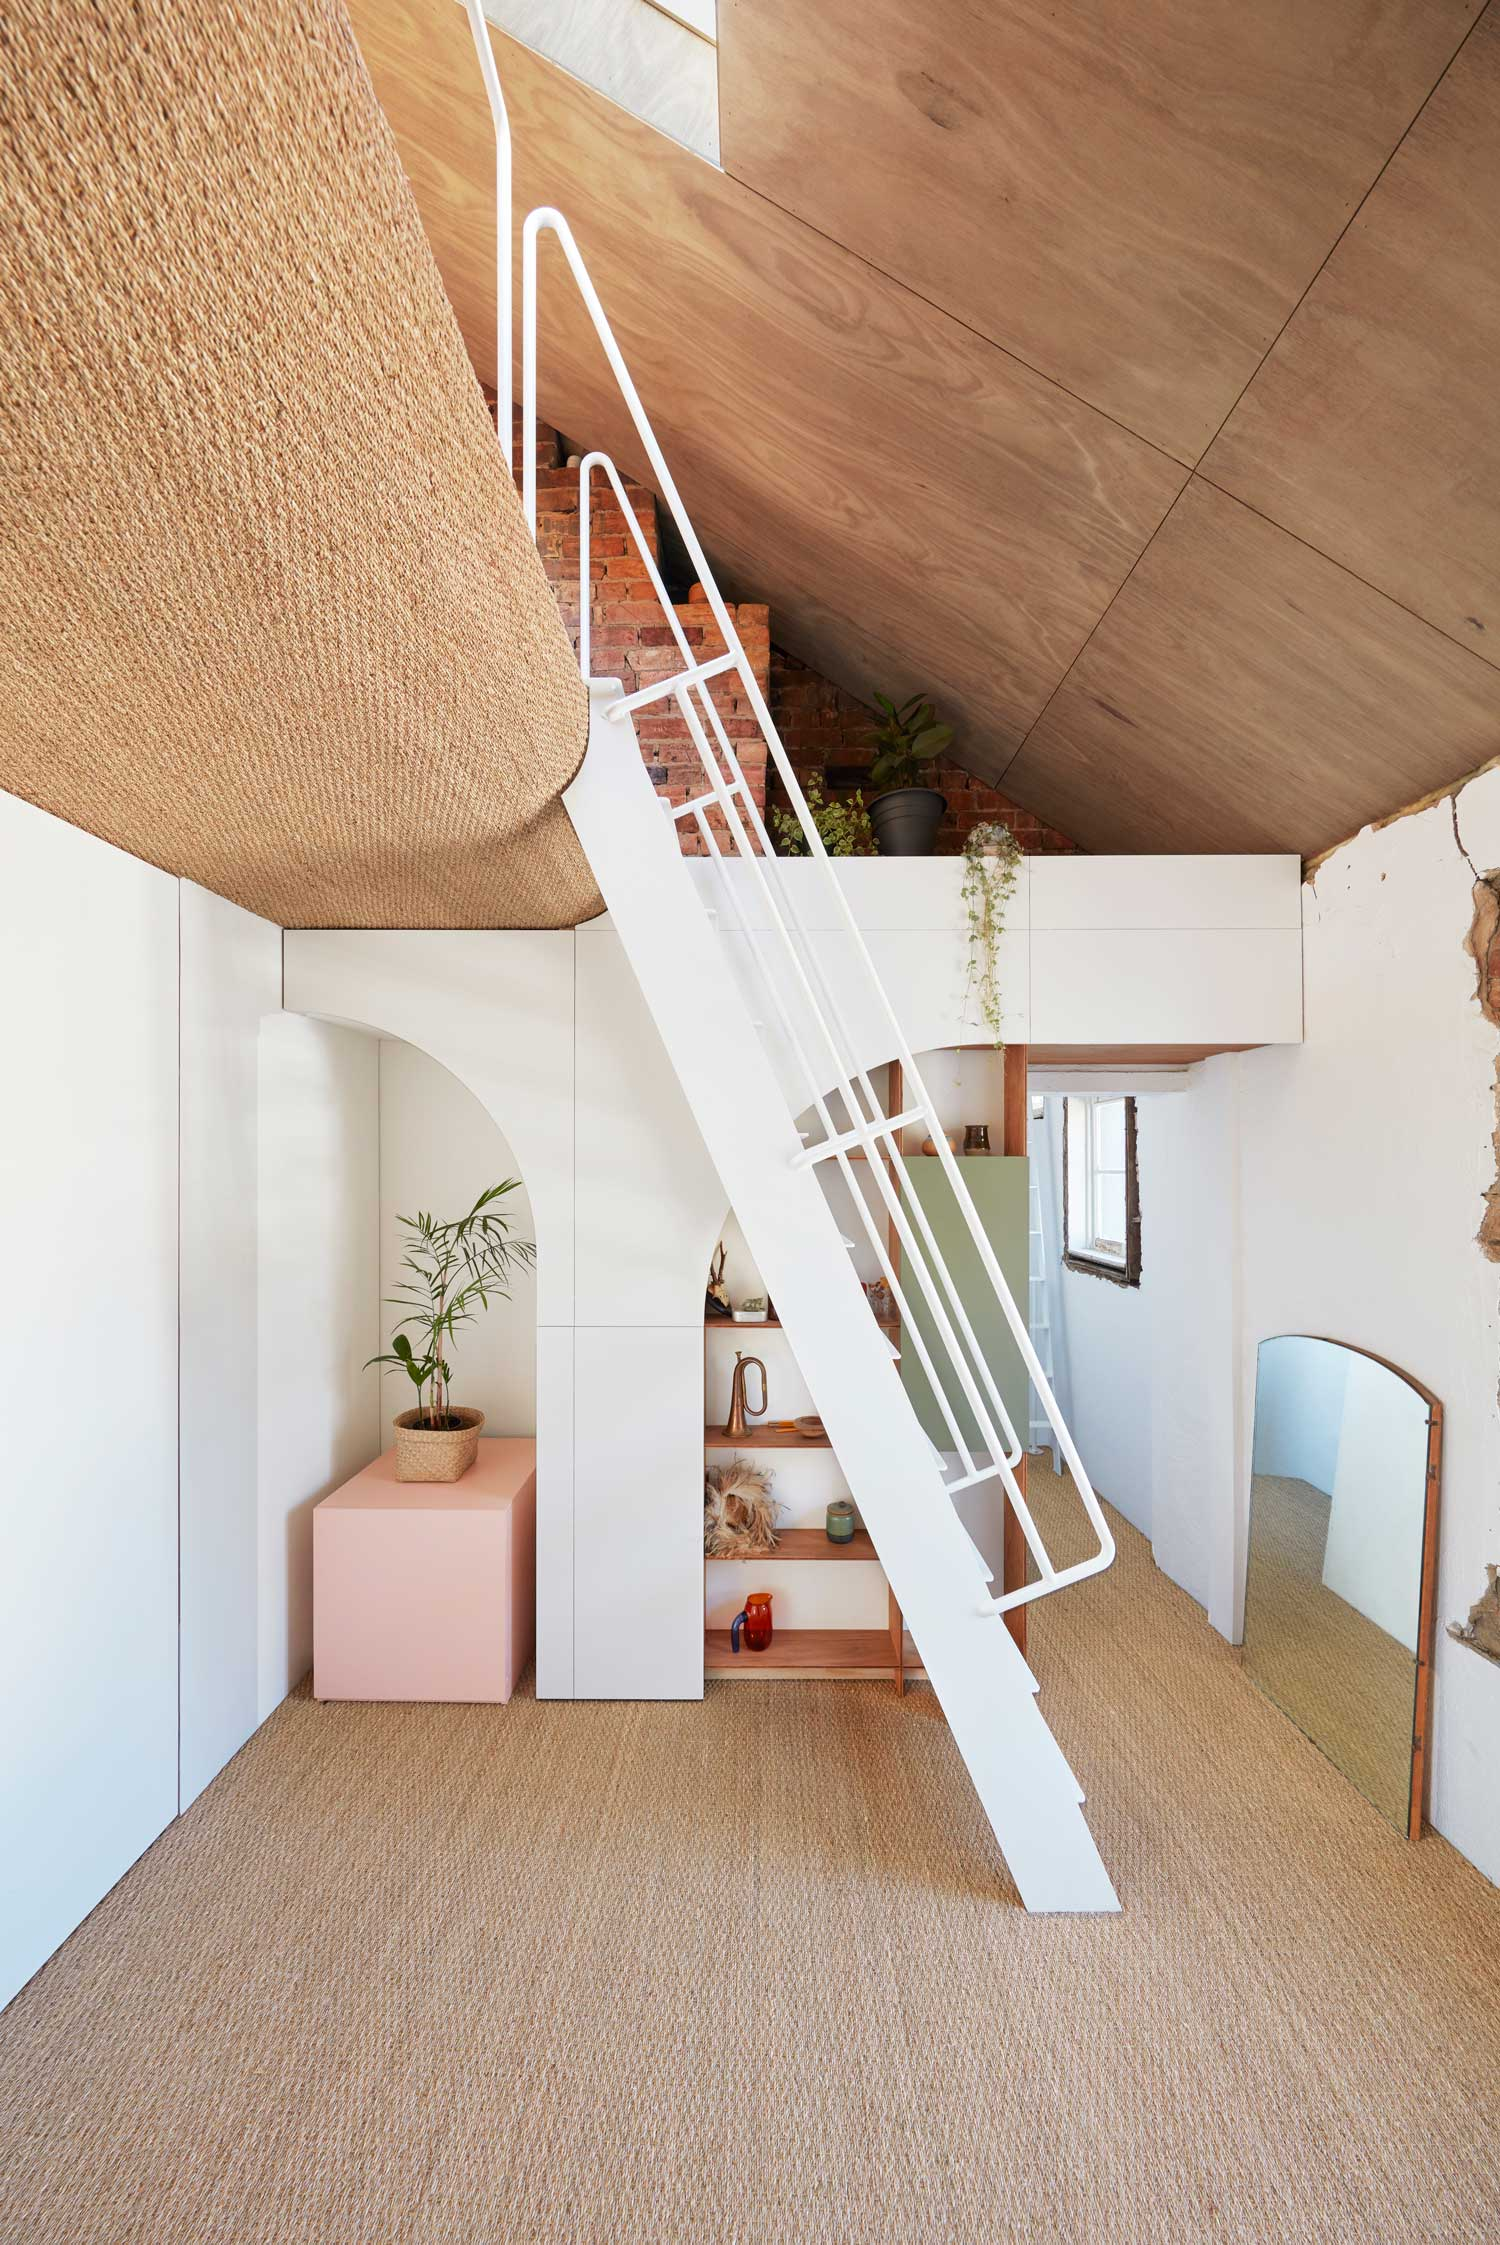 Hoa's House: Conversion of a 150-year-old Melbourne Pub by ioa-studio   Yellowtrace